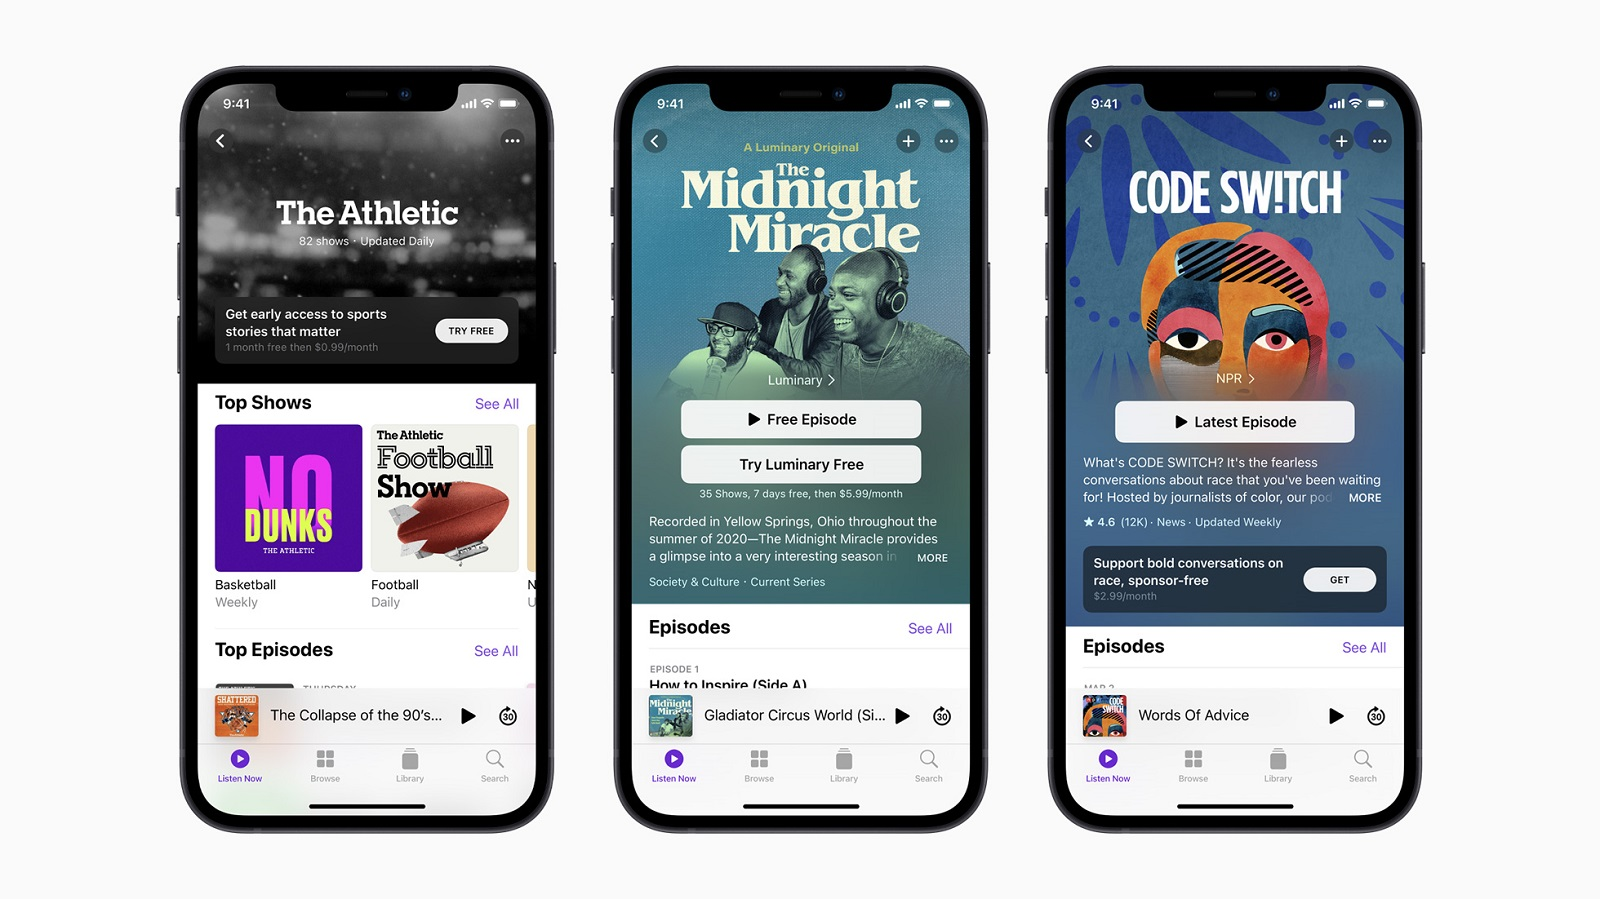 <p>Spotify might crush an exciting new Apple service before it even launches thumbnail